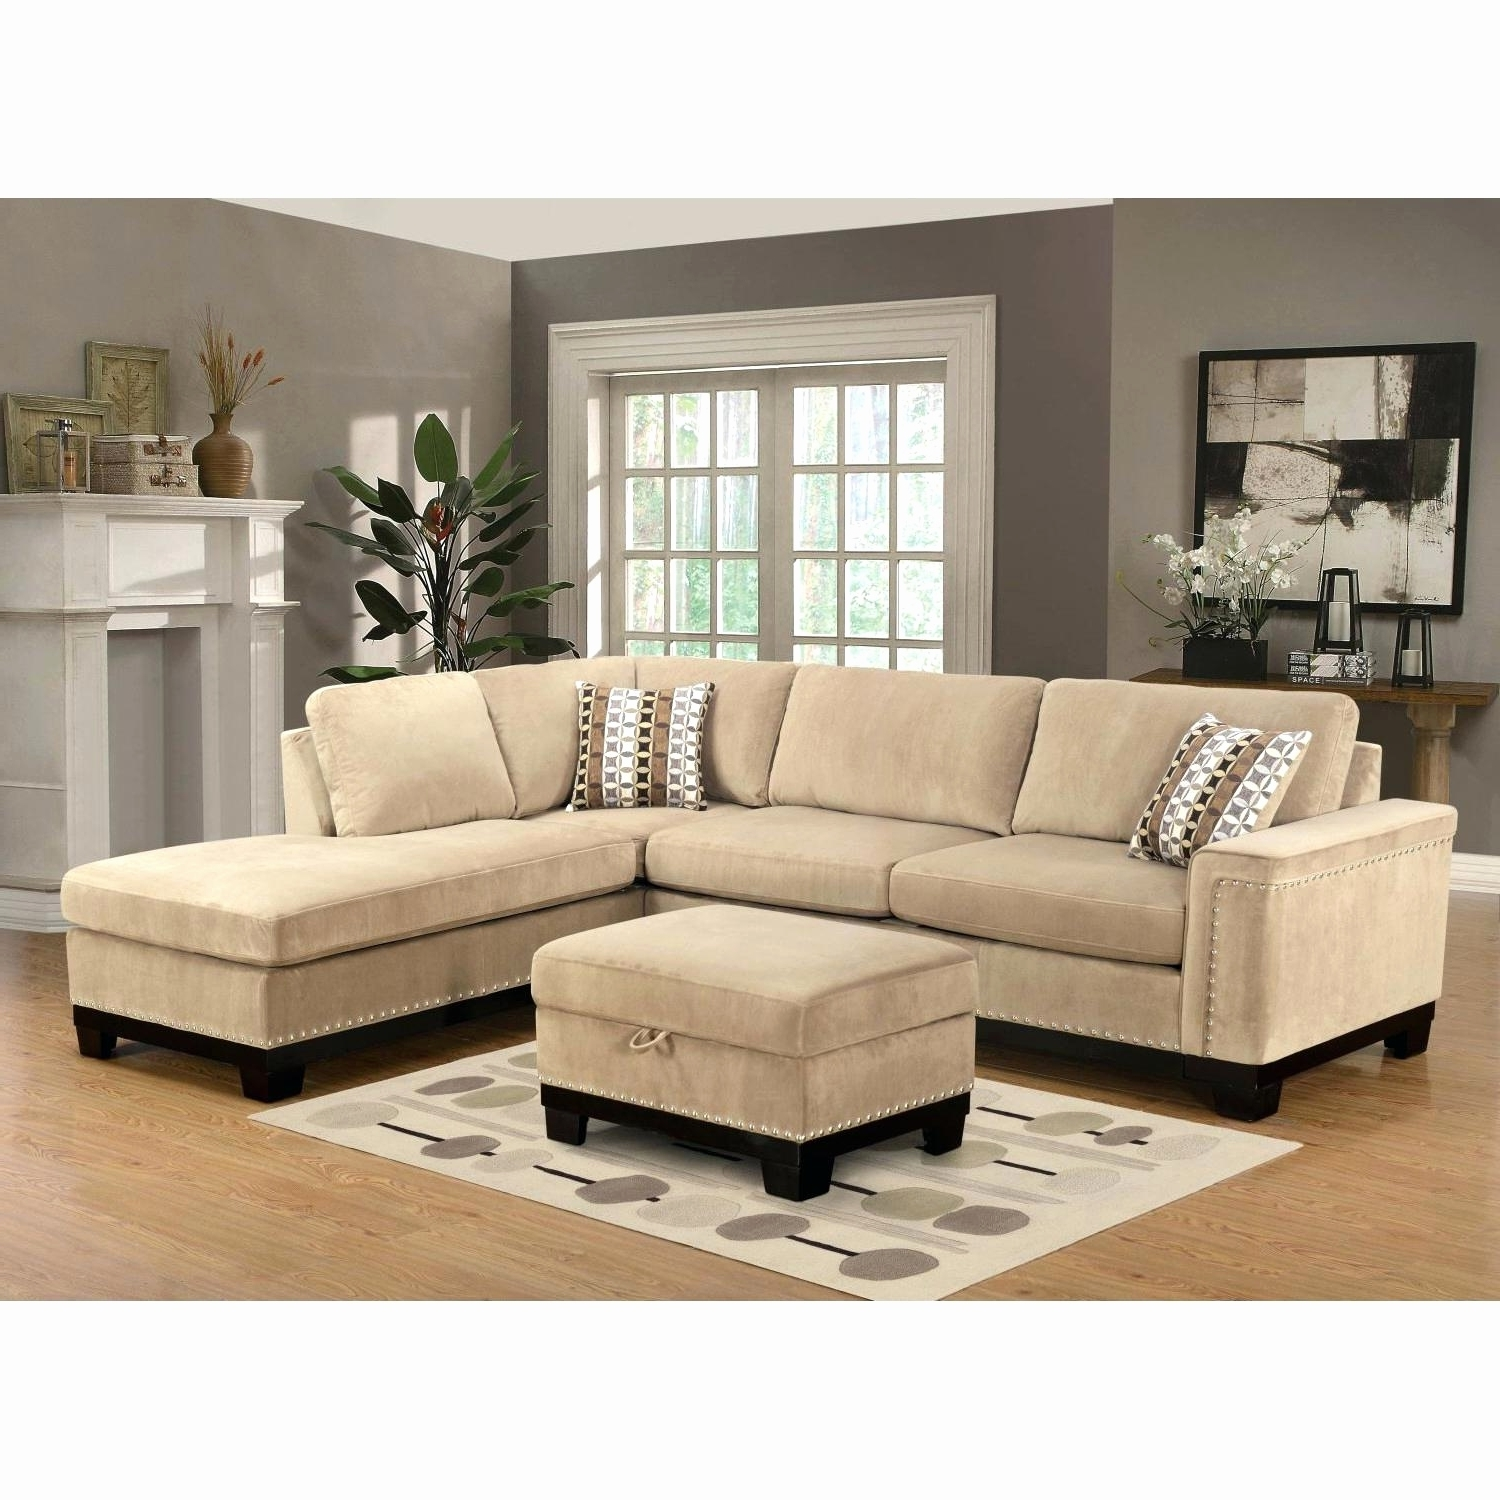 Widely Used Best Orange Sectional Sofa 2018 – Couches And Sofas Ideas Regarding Orange County Ca Sectional Sofas (View 20 of 20)